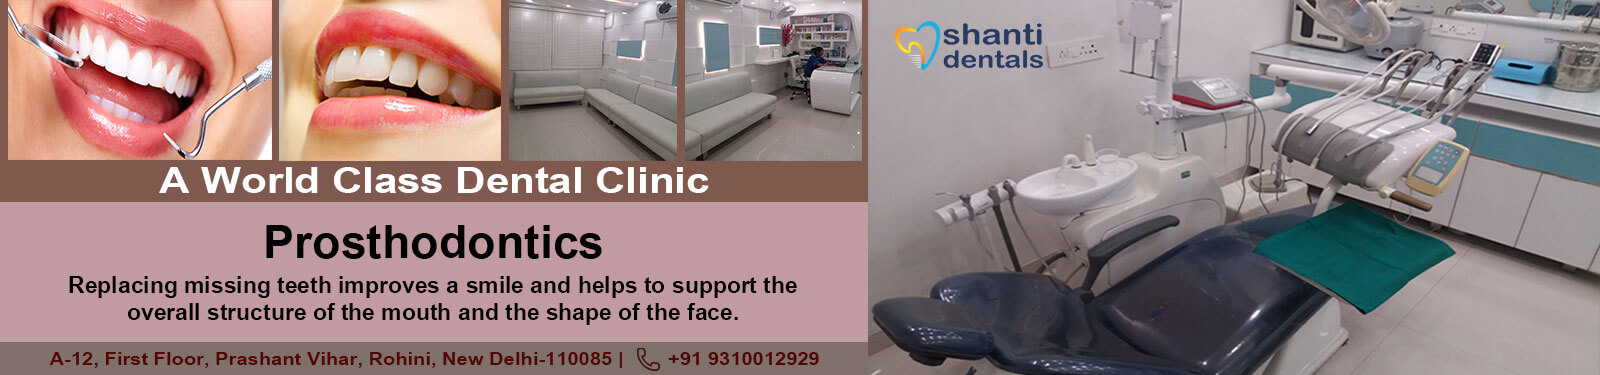 prosthodontics Care in Rohini Delhi by Shanti Dentals